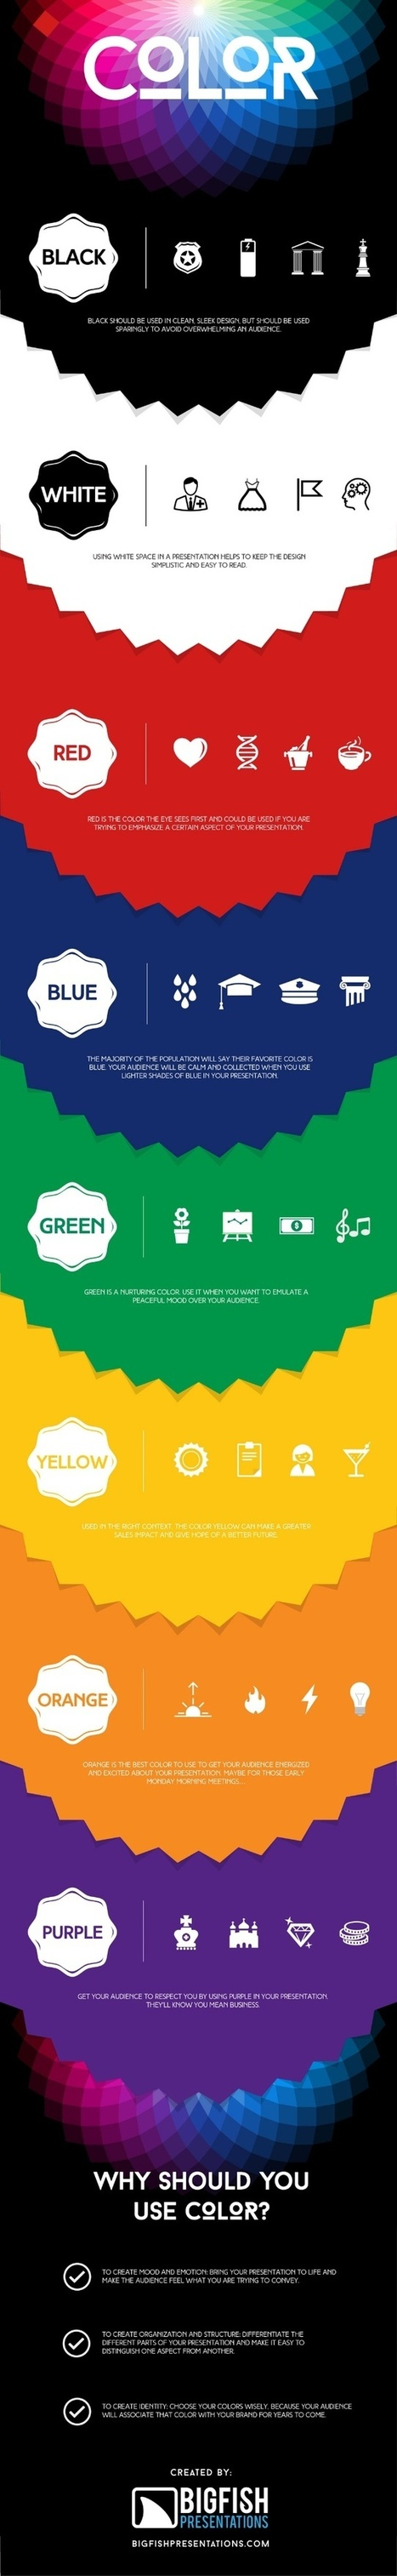 Psicología del color para presentaciones #infografia #infographic #design | Photo | Scoop.it